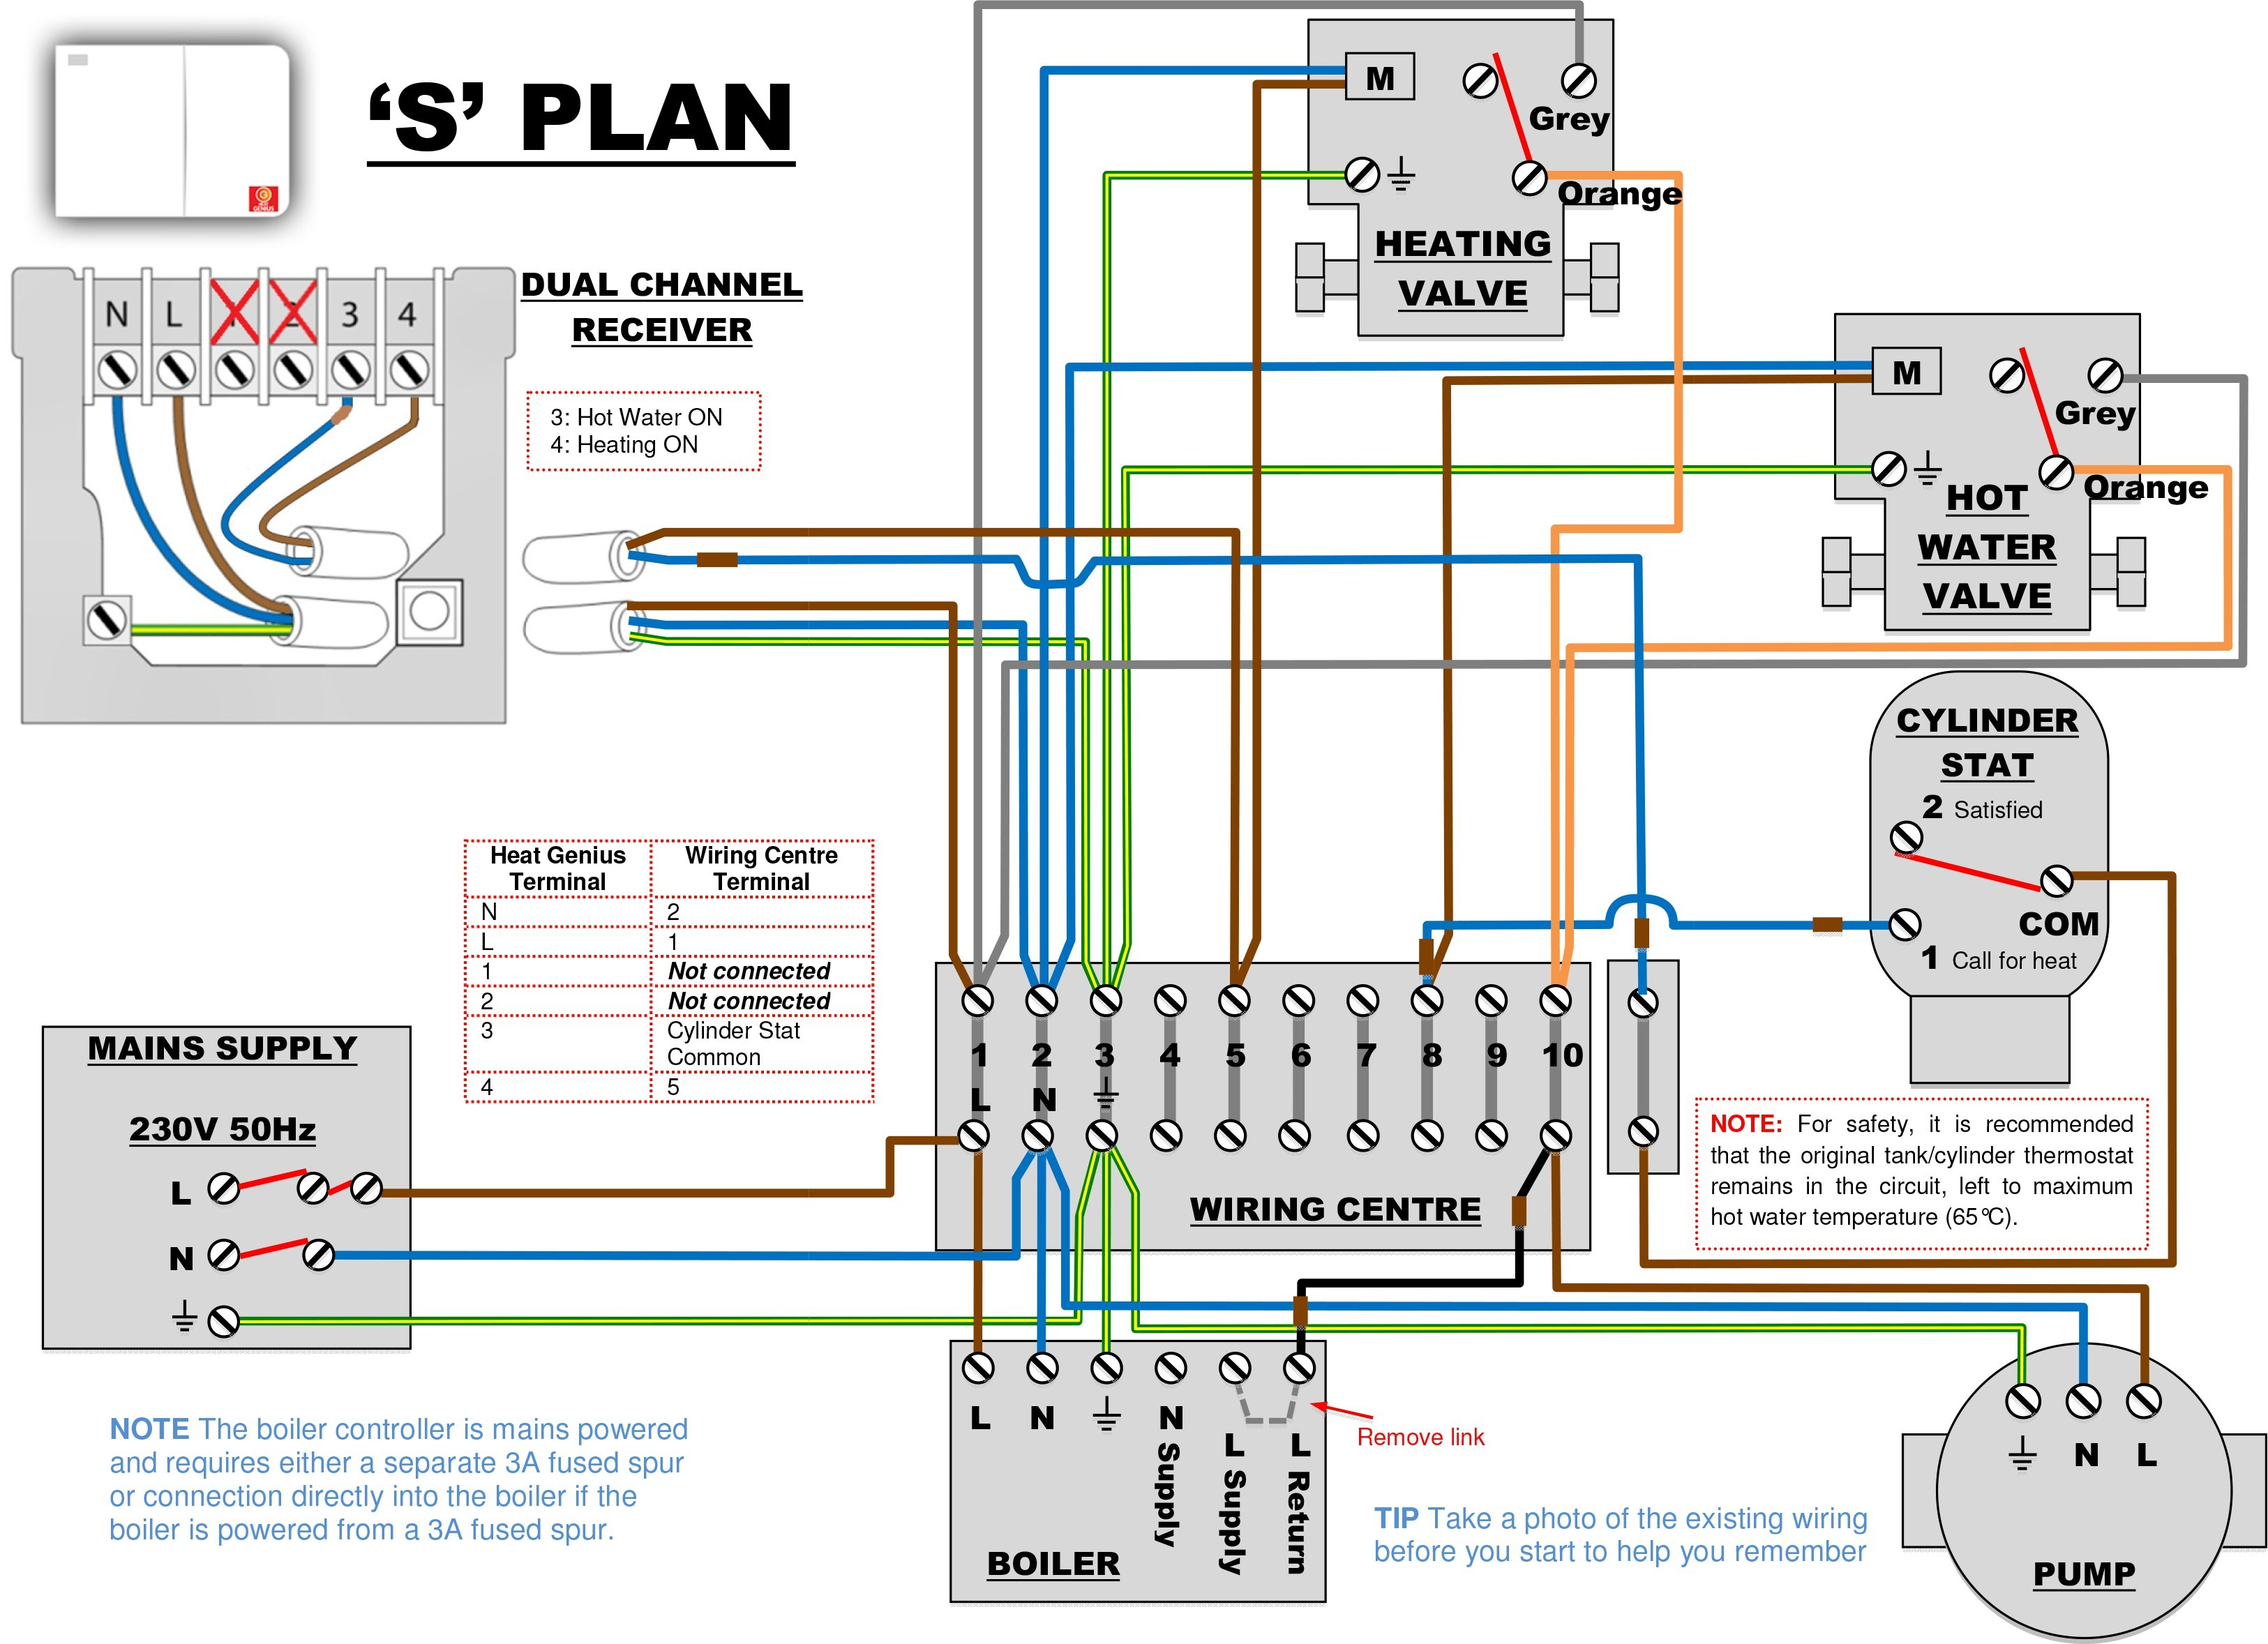 Nest Thermostat Heat Pump Wiring Diagram Heat Pump Thermostat Wiring - Nest Wiring Diagram For A Heat Pump